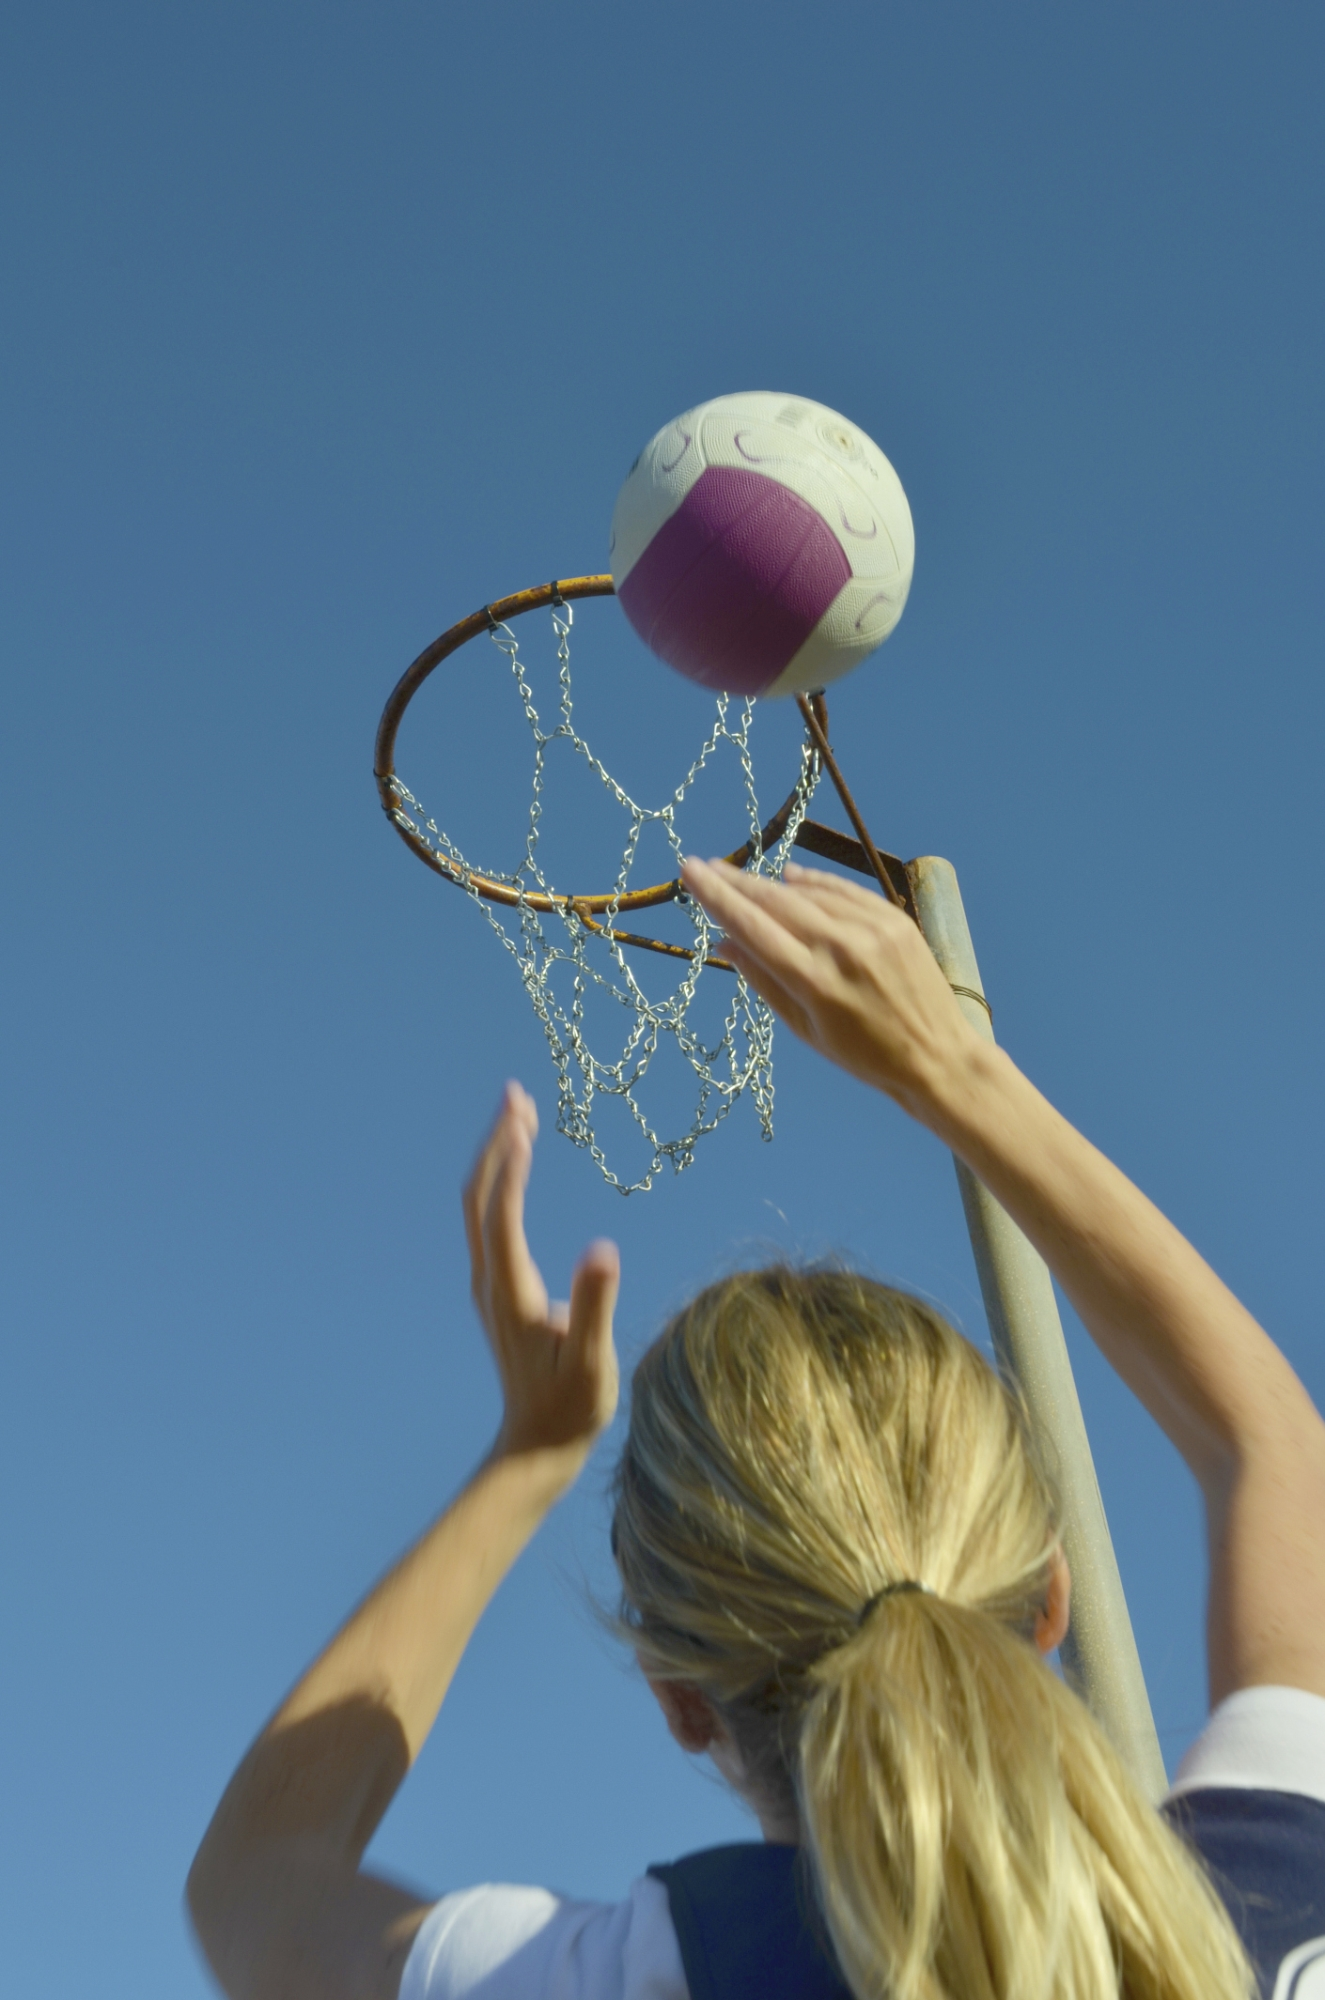 Netball: Classics beat Classics in classic to make grand final